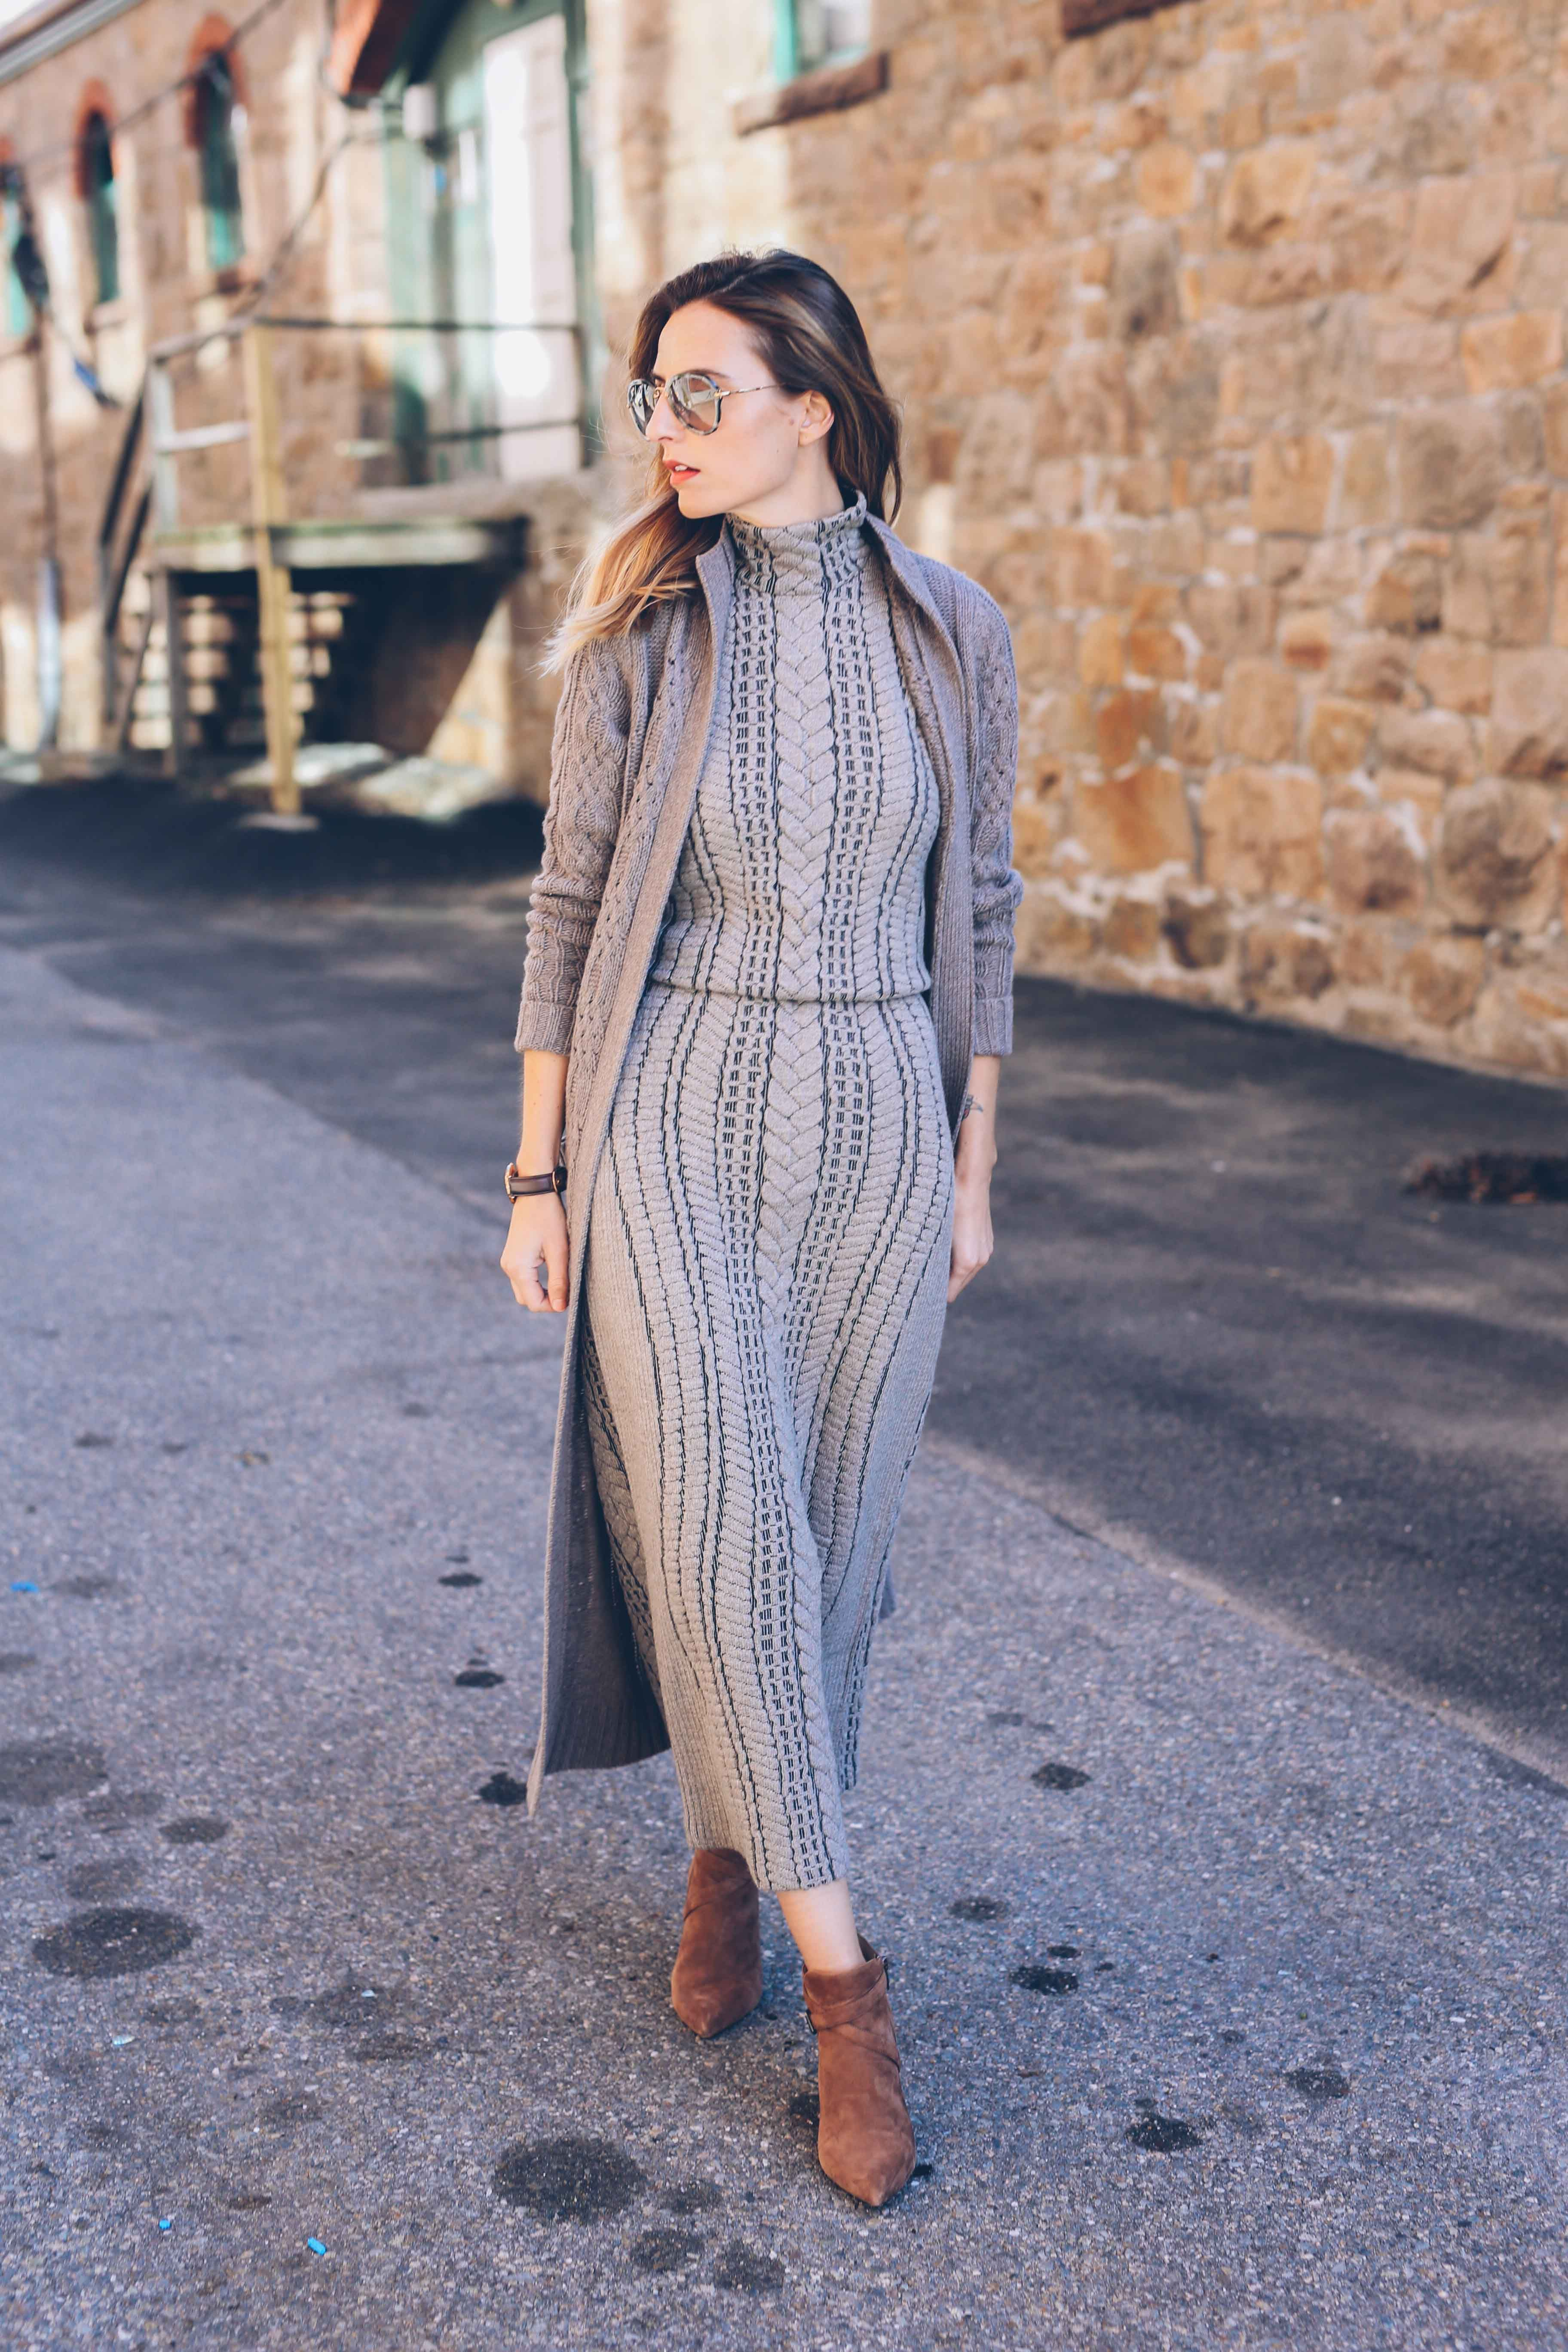 Cable Knit Maxi Dress Prosecco and Plaid | W by Worth Women ...